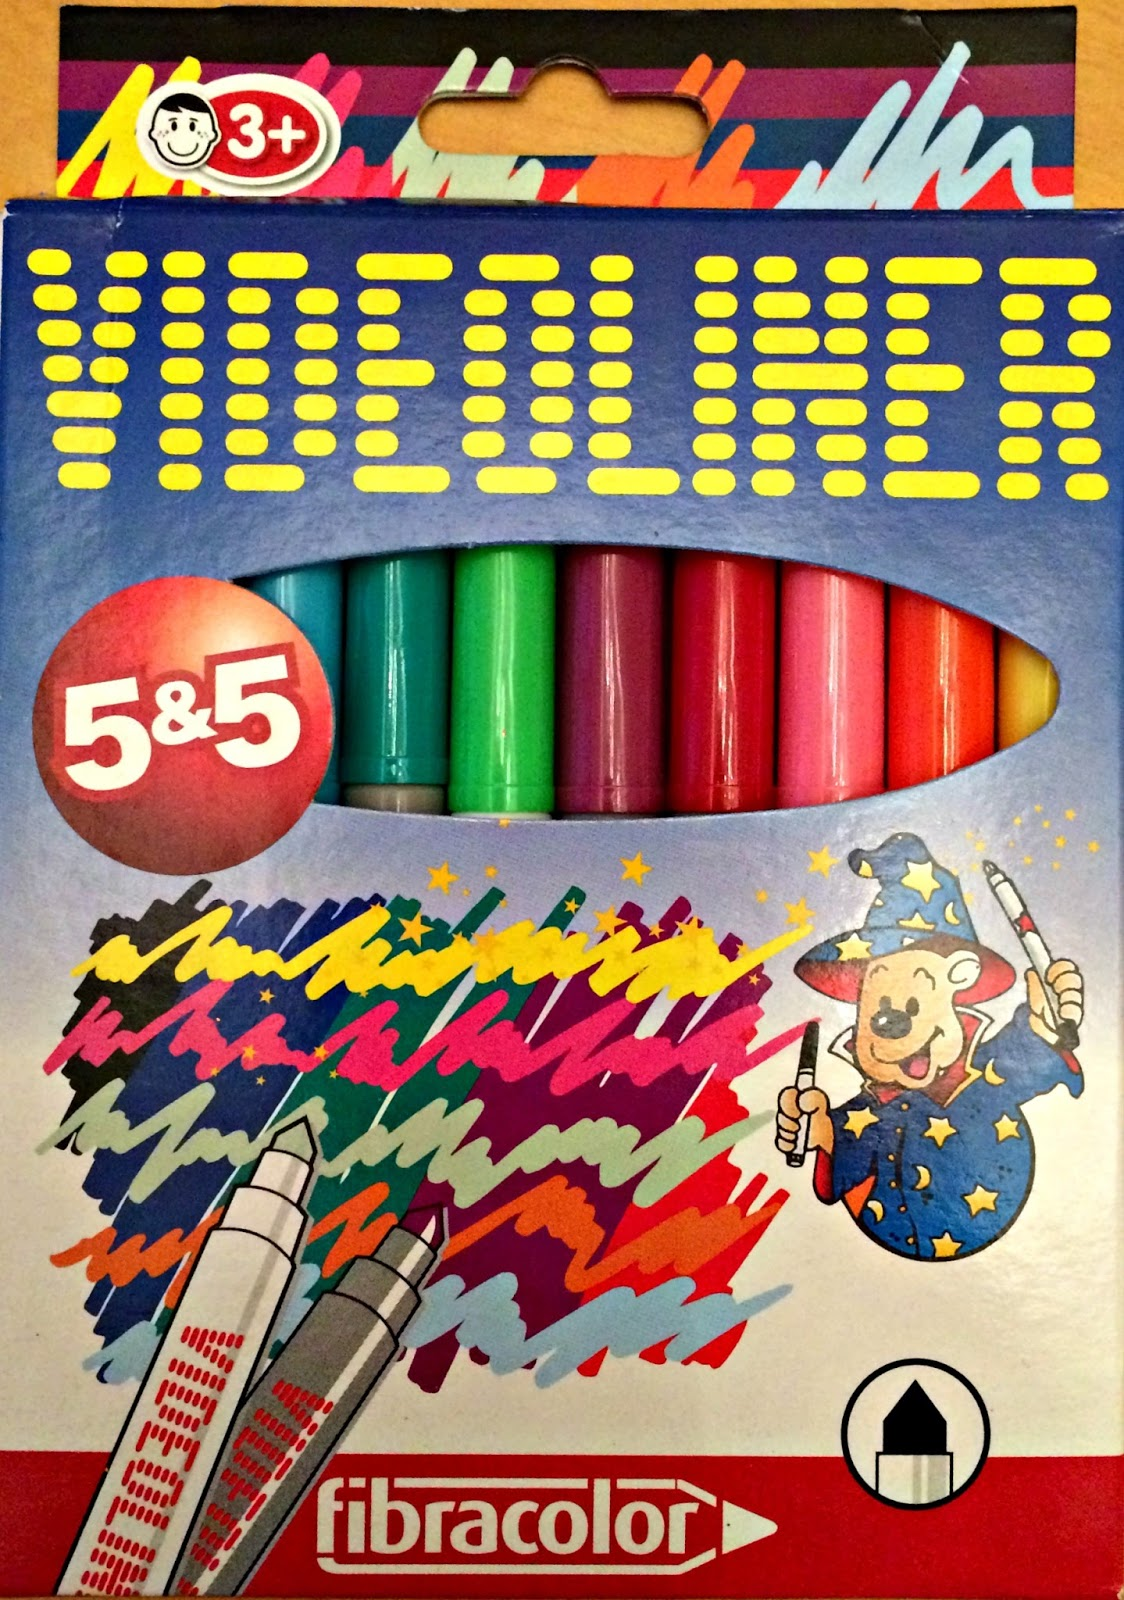 Fibracolor Videoliner Markers from Idealworld.tv